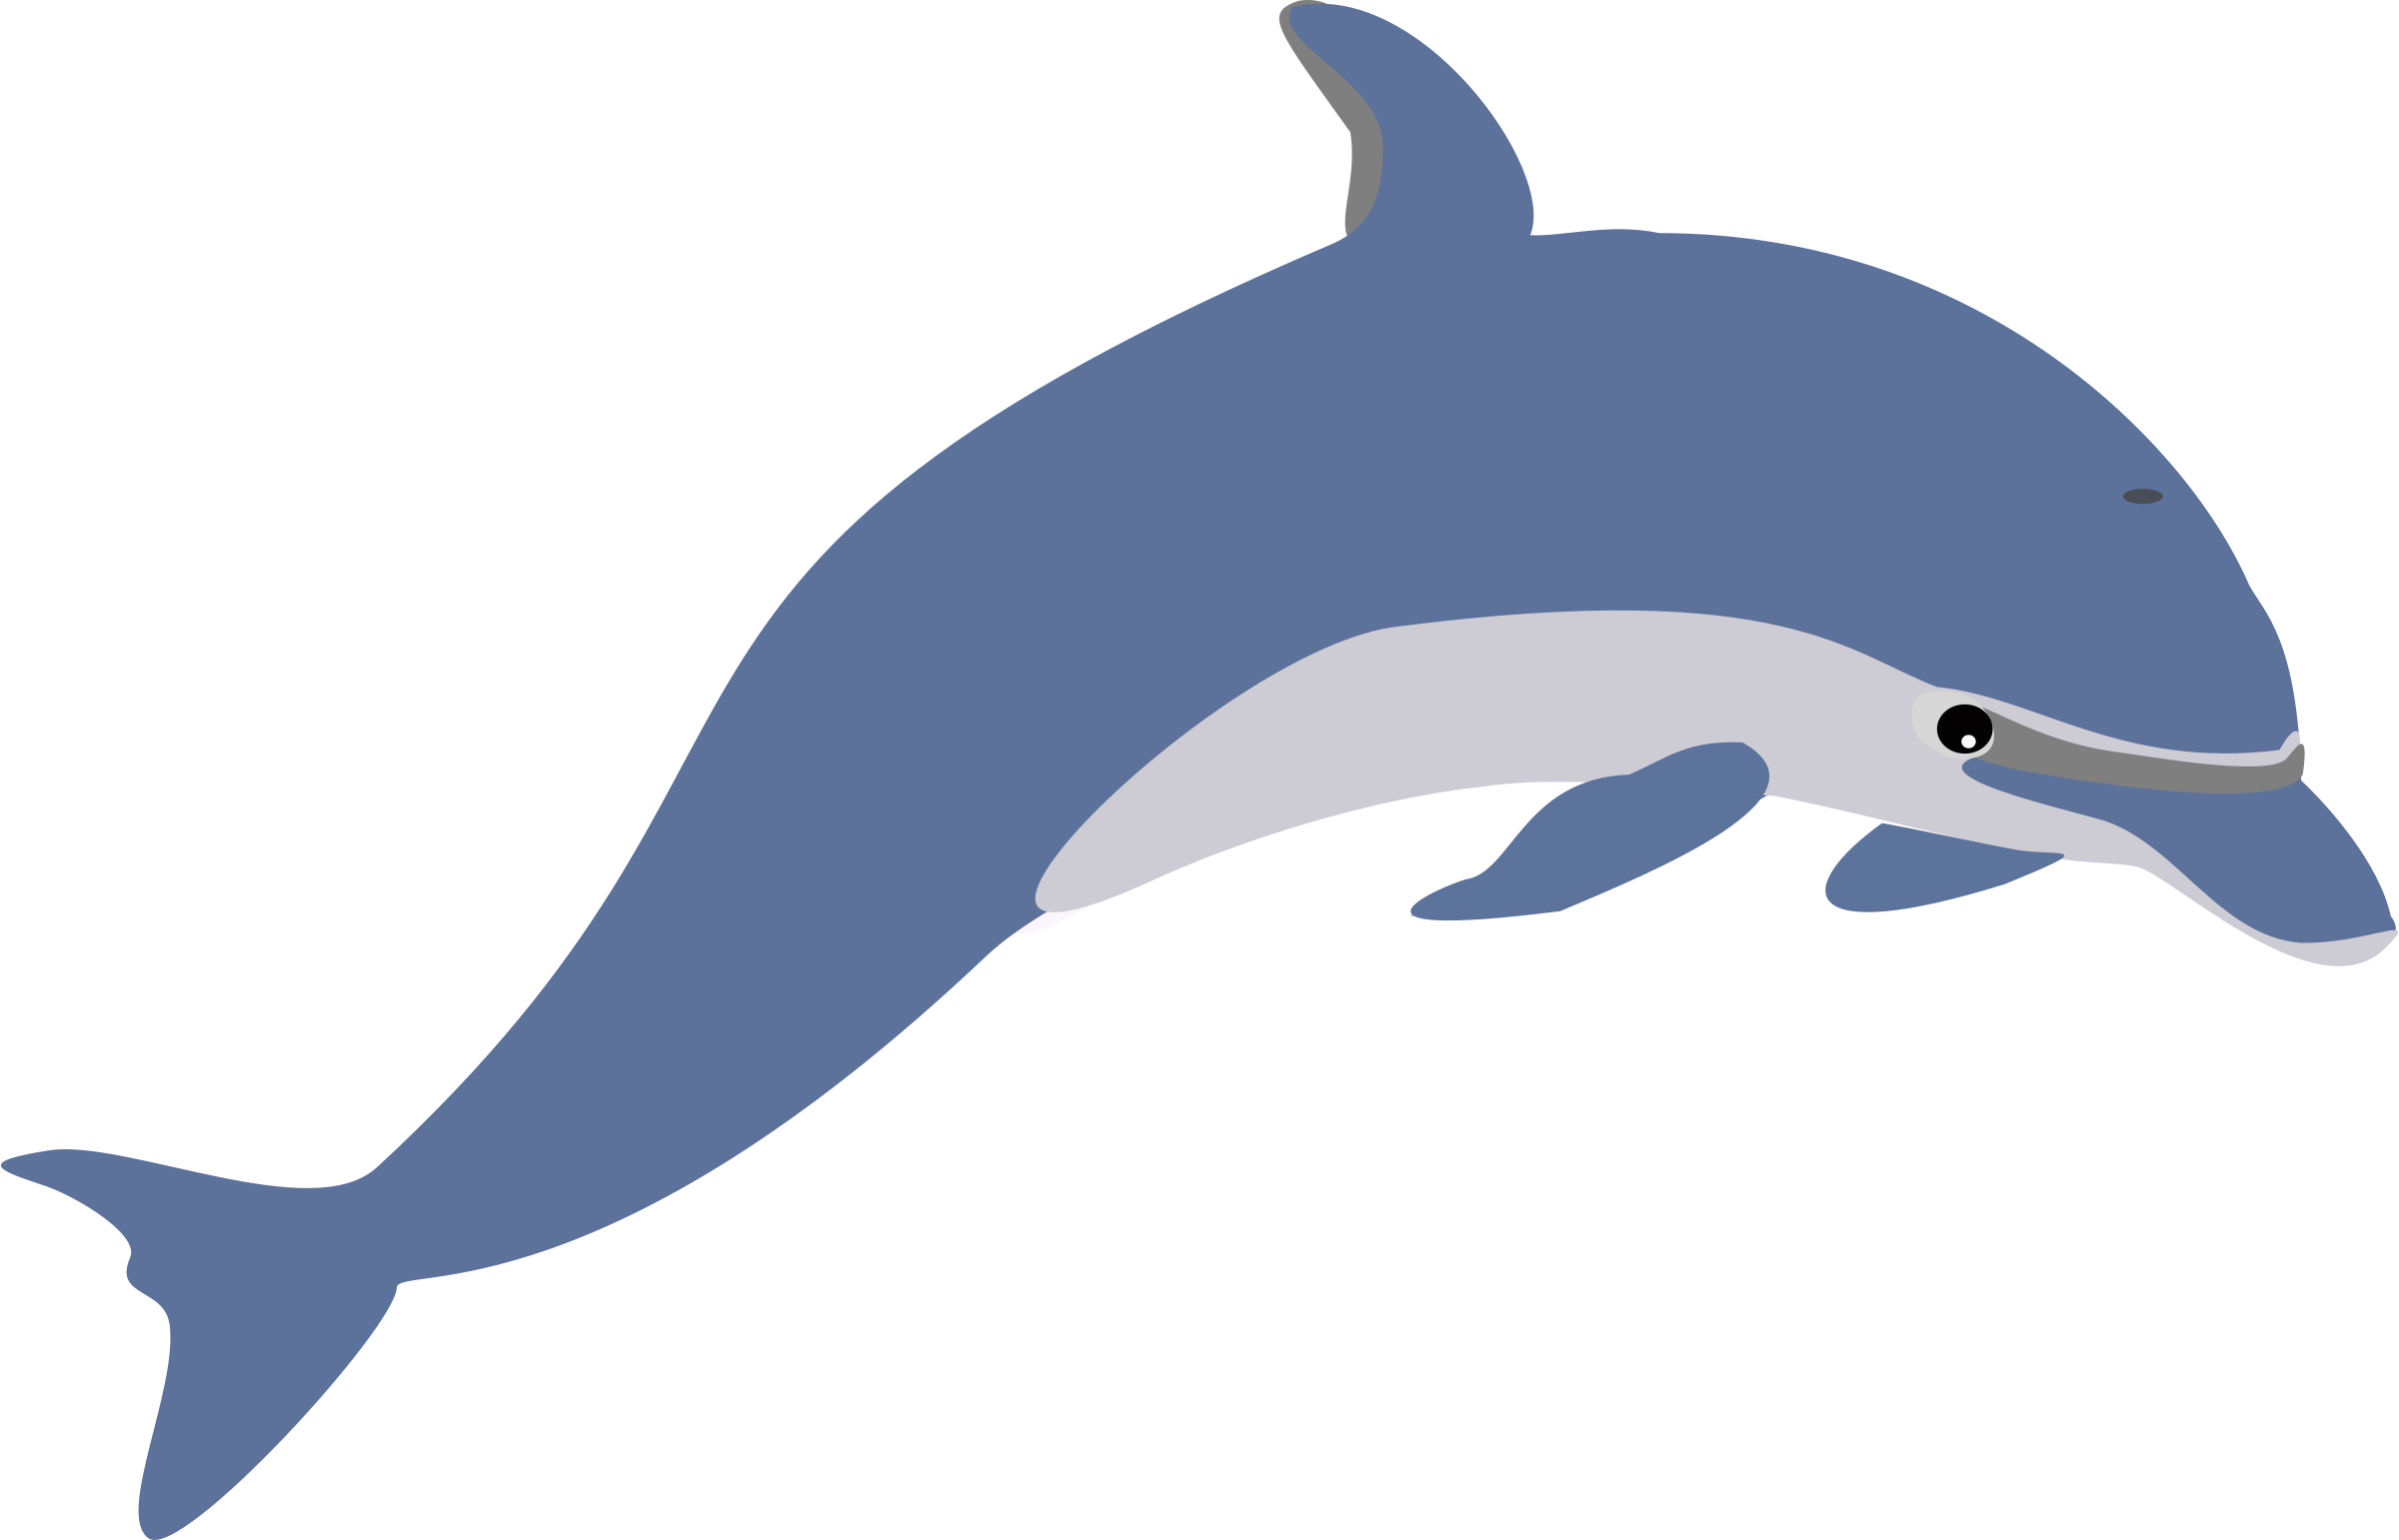 Dolphins clipart #12, Download drawings